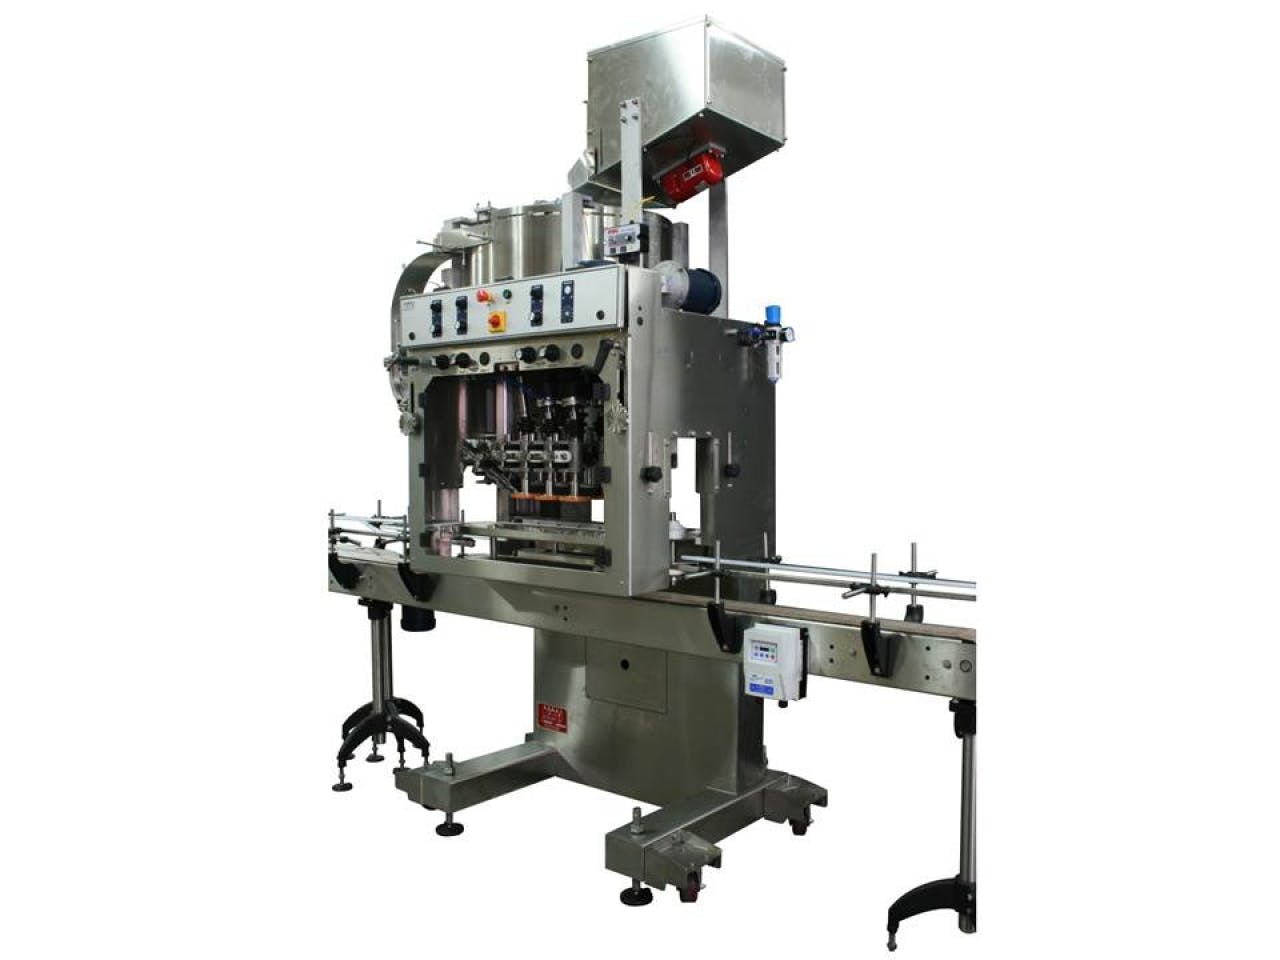 Automatic Inline Bottle Capping Machine Model TruCap-X-Cent Bottle capper sold by ACASI Machinery